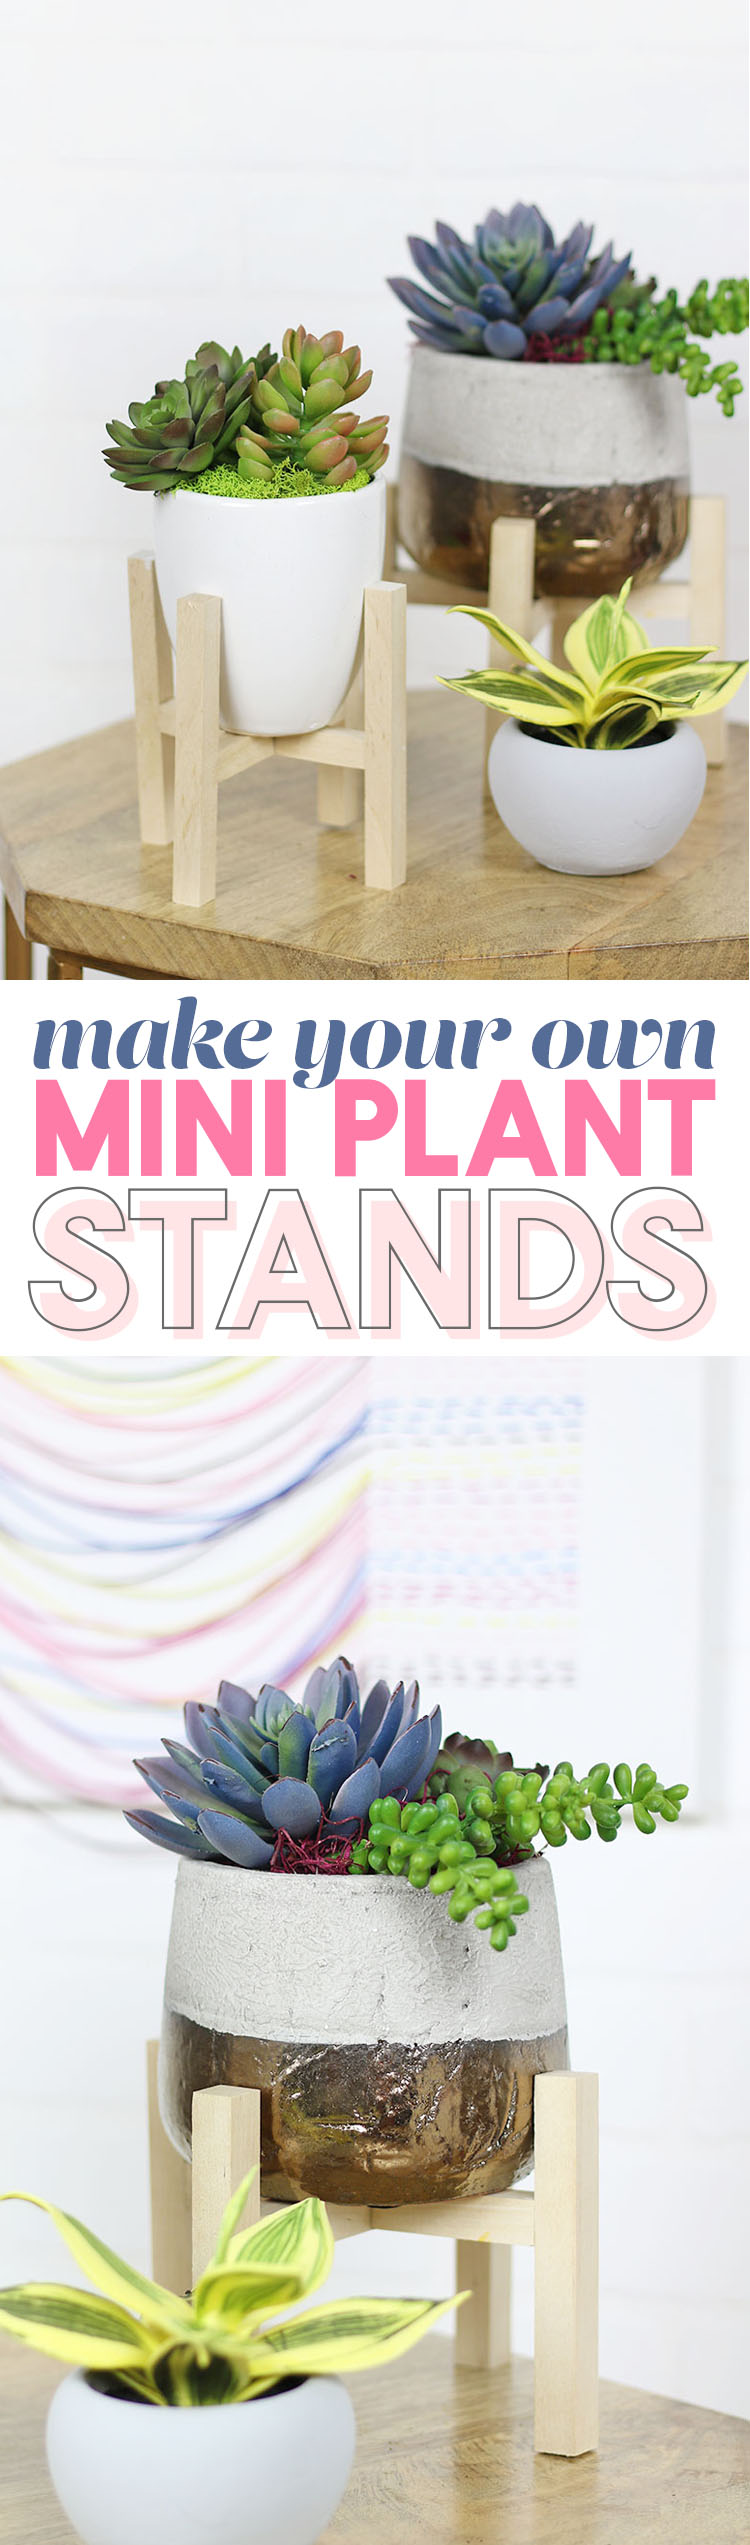 DIY Mini Plant Stand - make your own modern mini plant stand